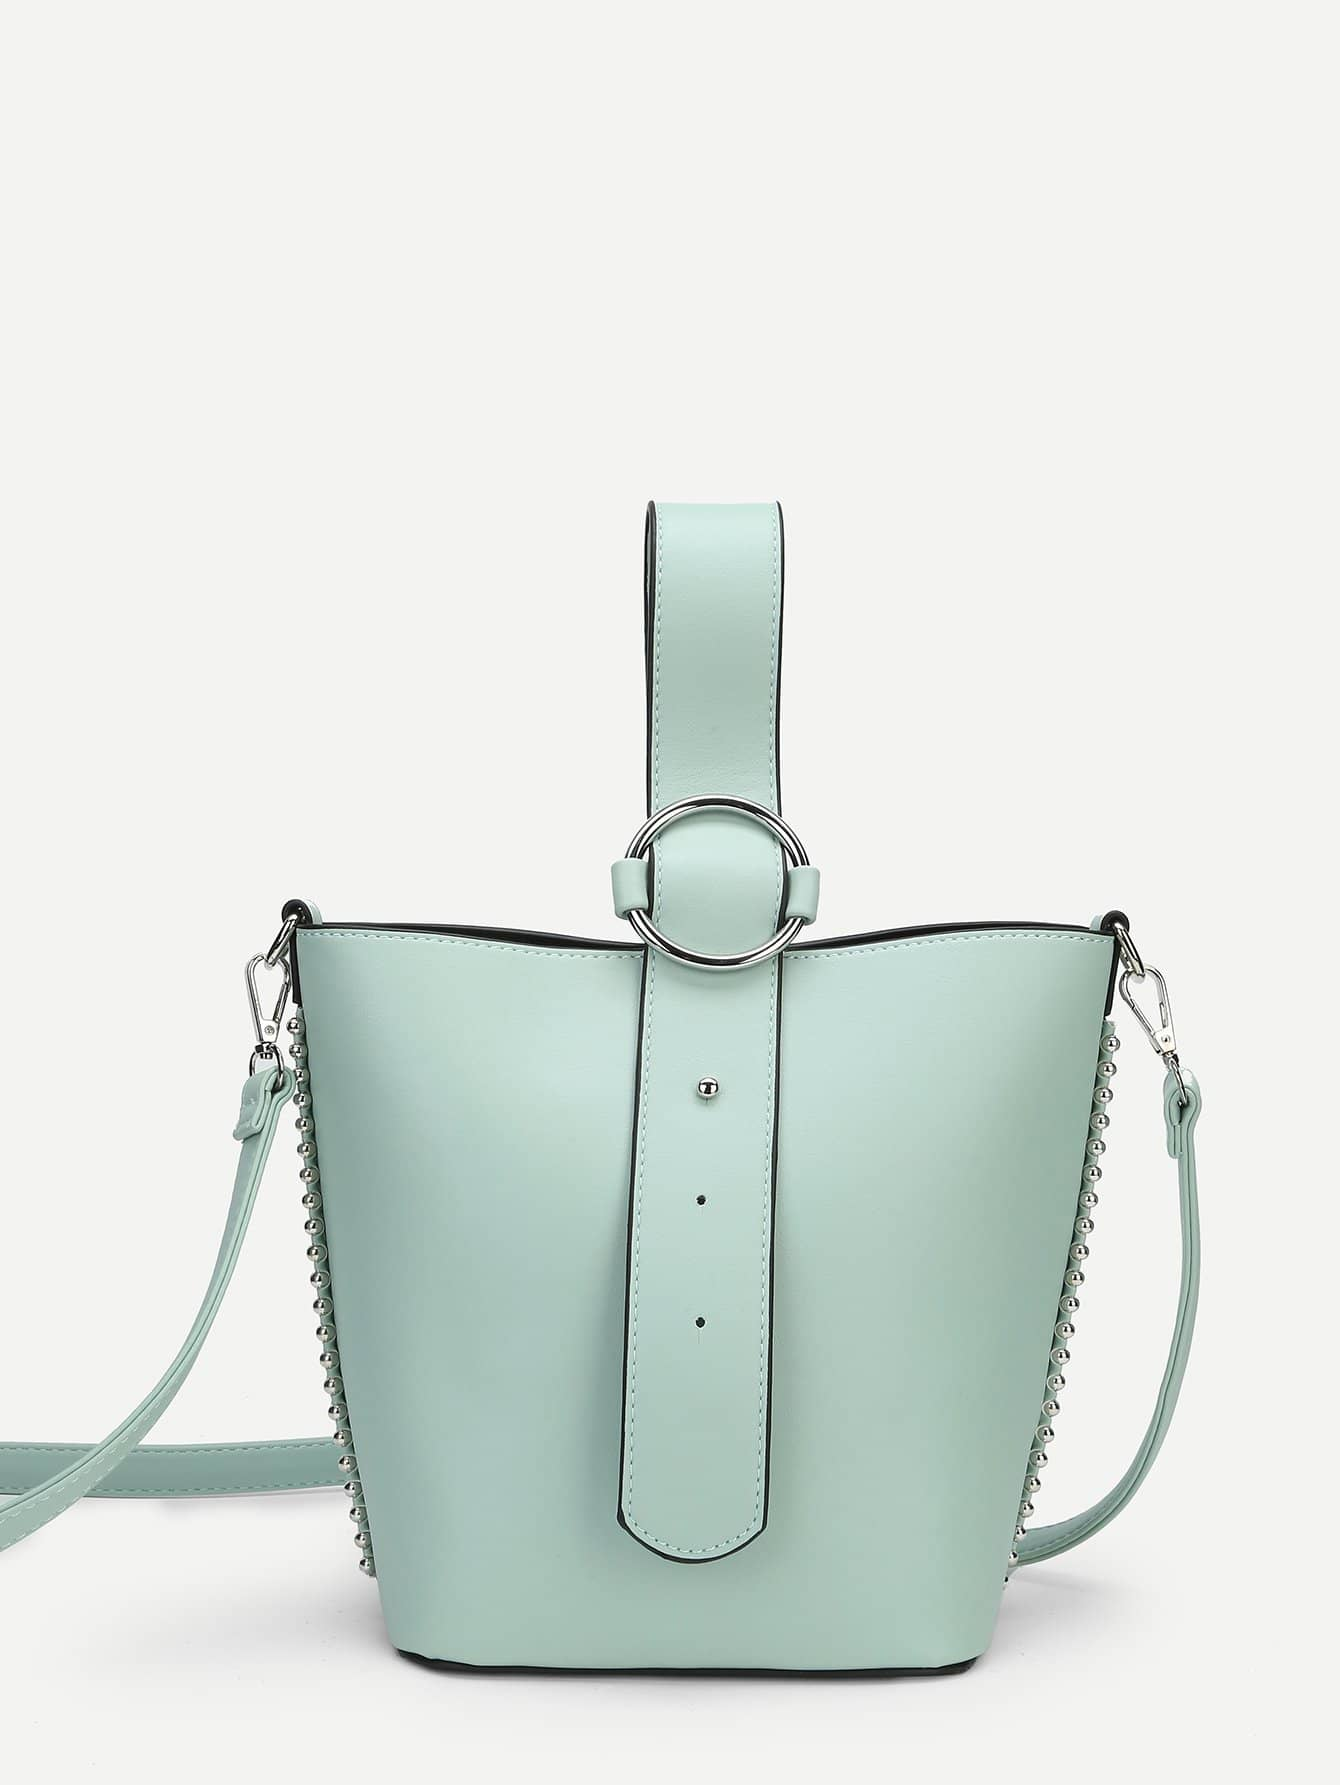 PU Shoulder Bag With Convertible Strap studded decorated pu bag with convertible strap